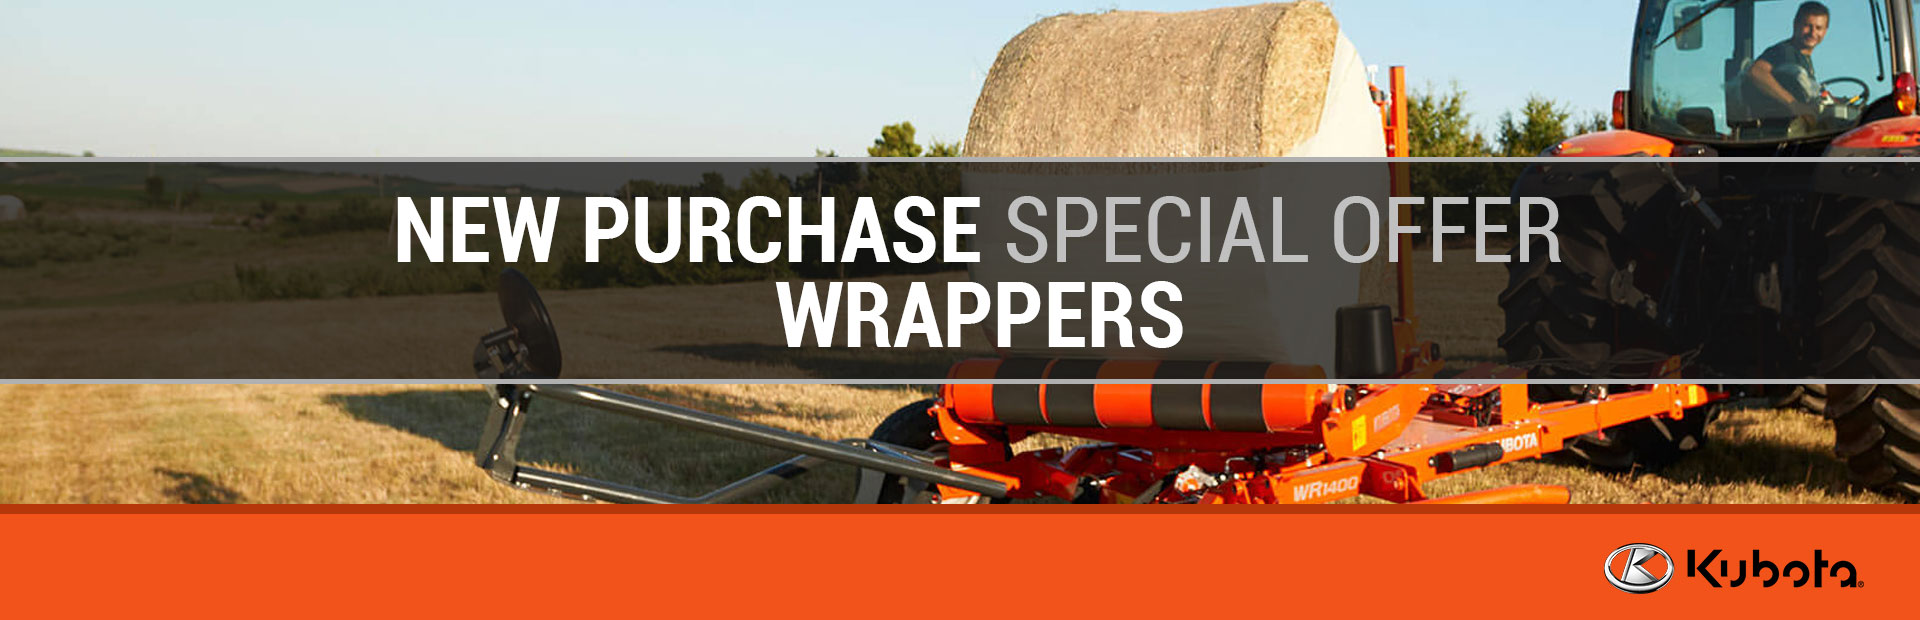 Kubota: New Purchase Special Offer - Wrappers